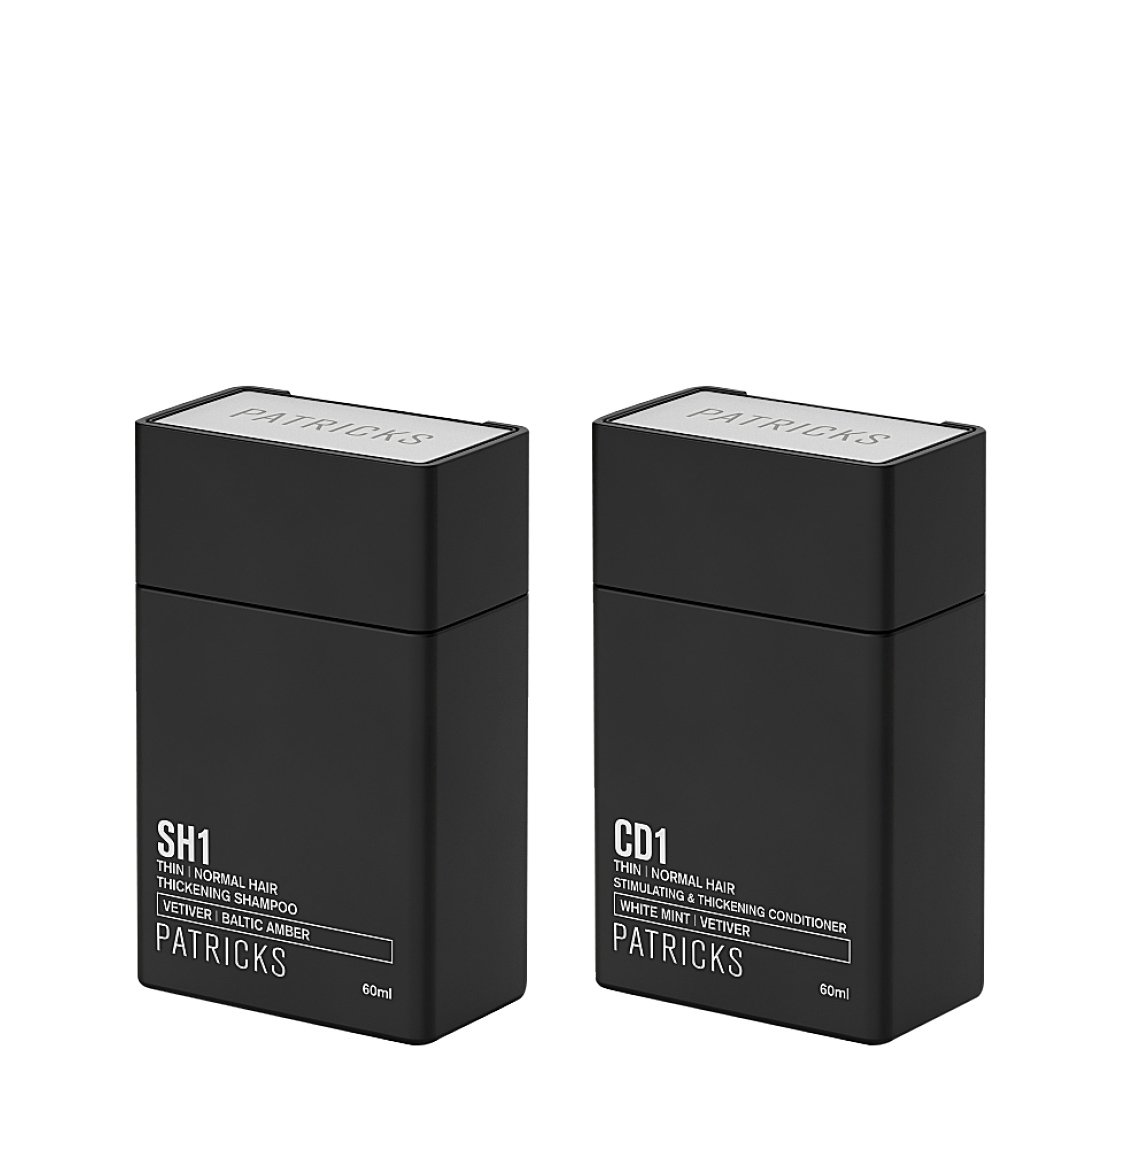 Patricks SH1 | CD1 Shampoo and Conditioner Travel Set